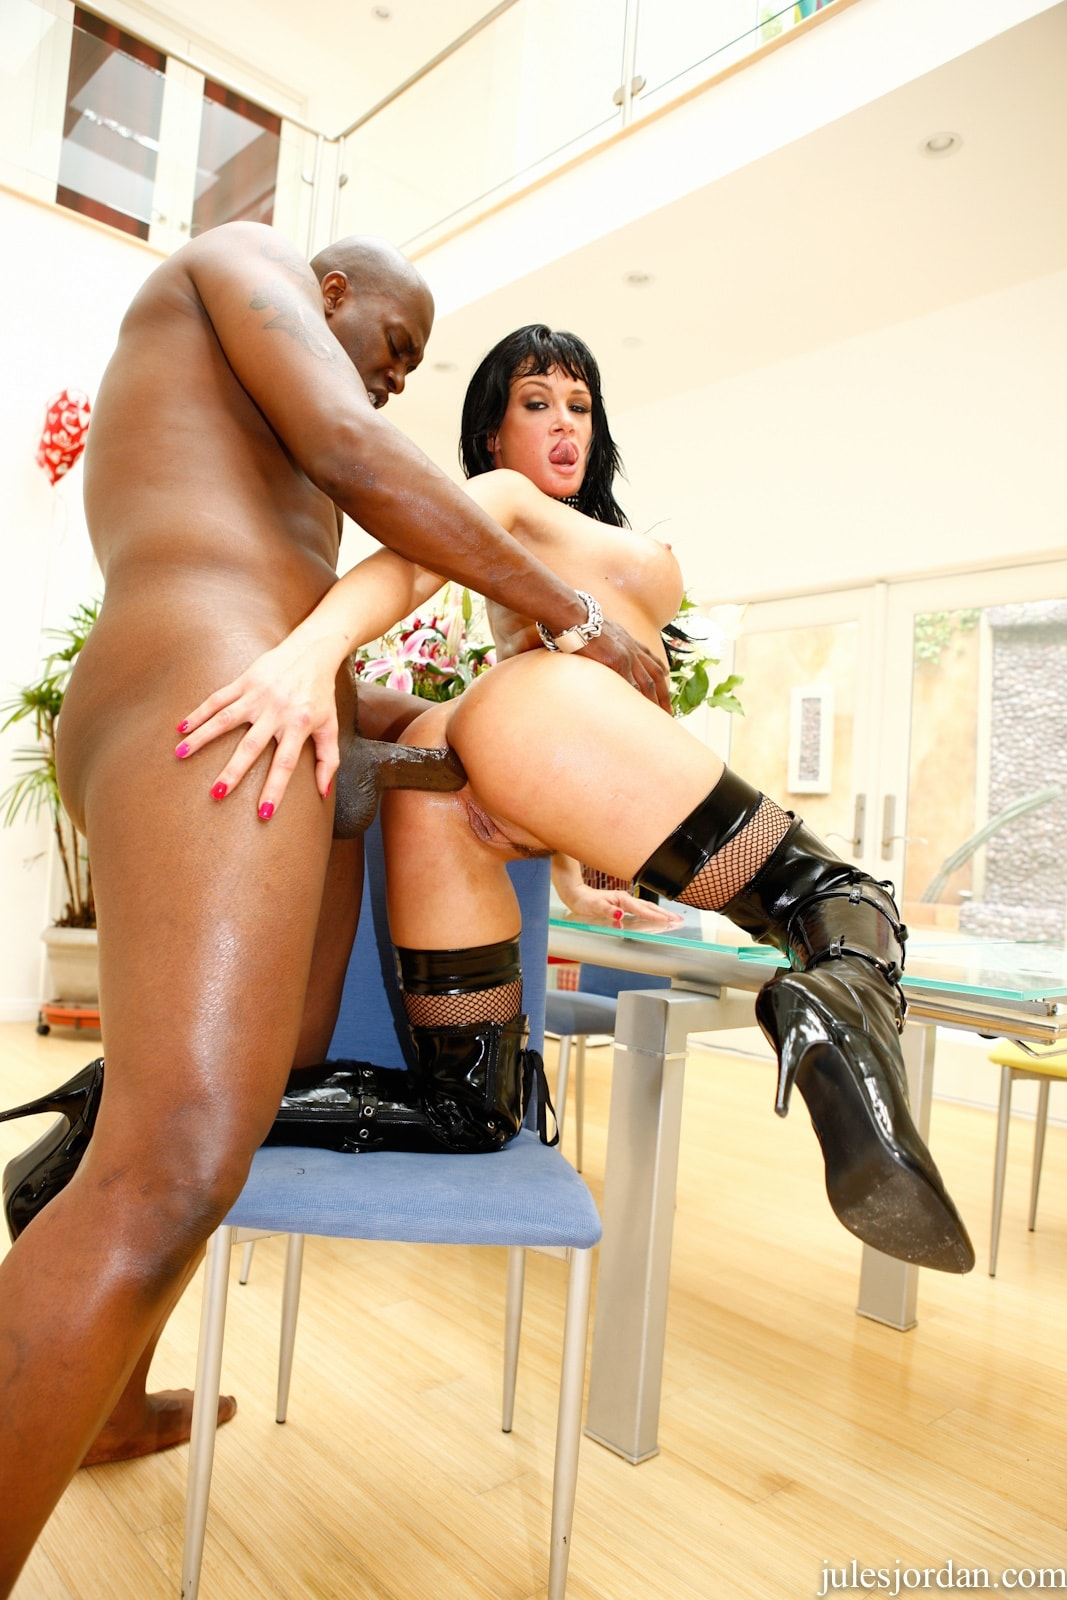 Tory lane interracial sex pornstar toes naked